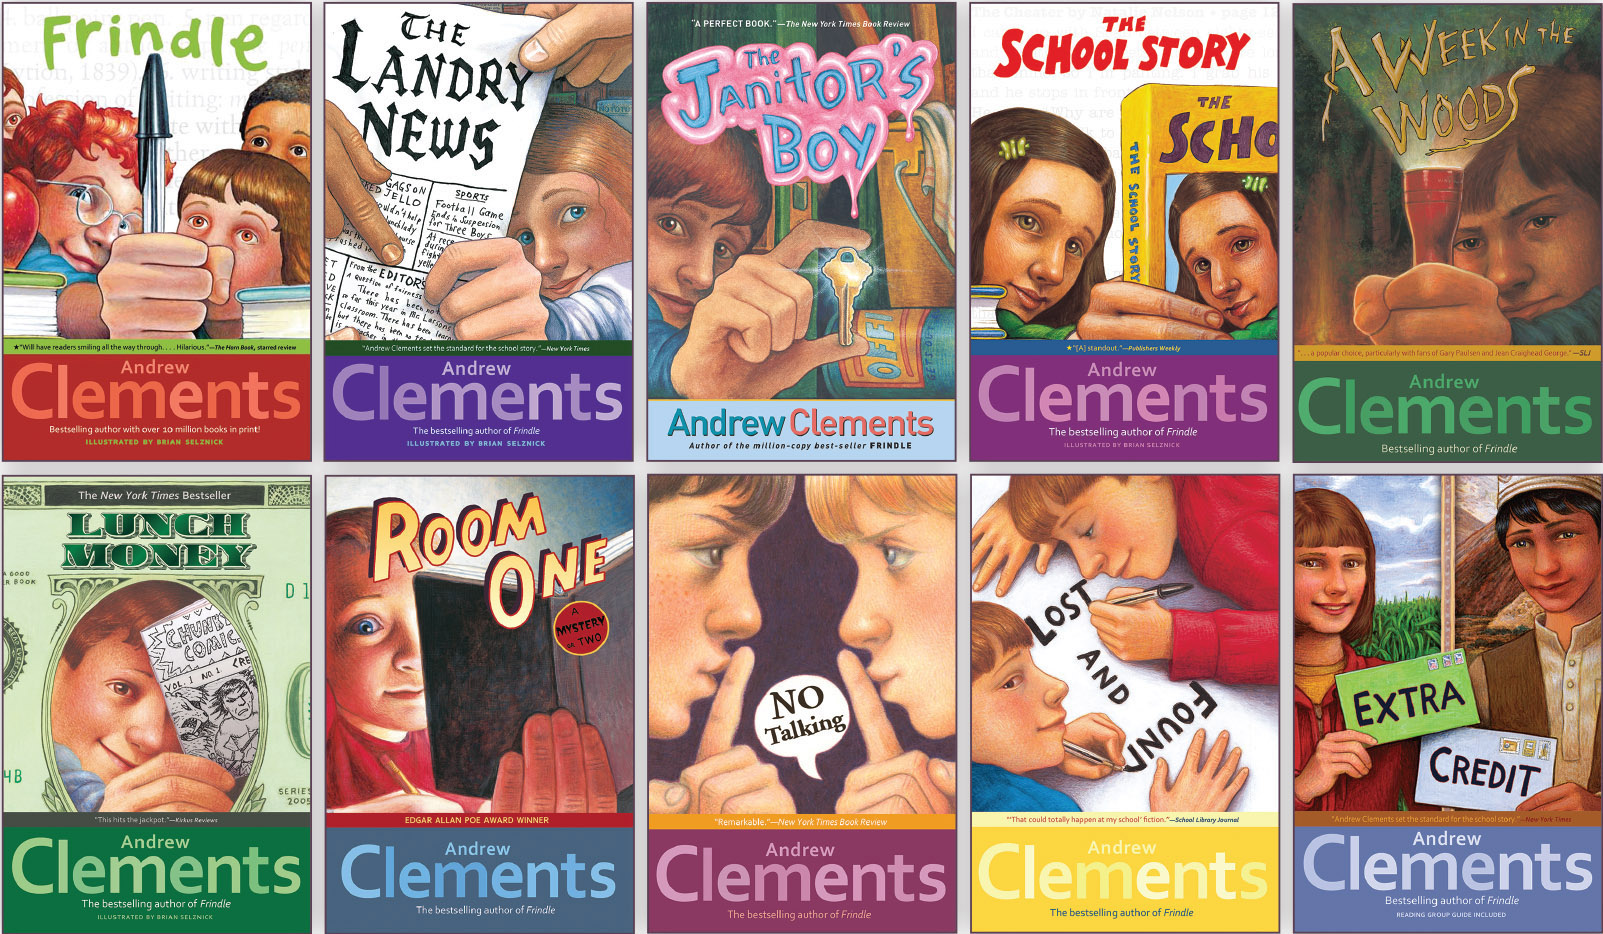 andrew clements drilla eng